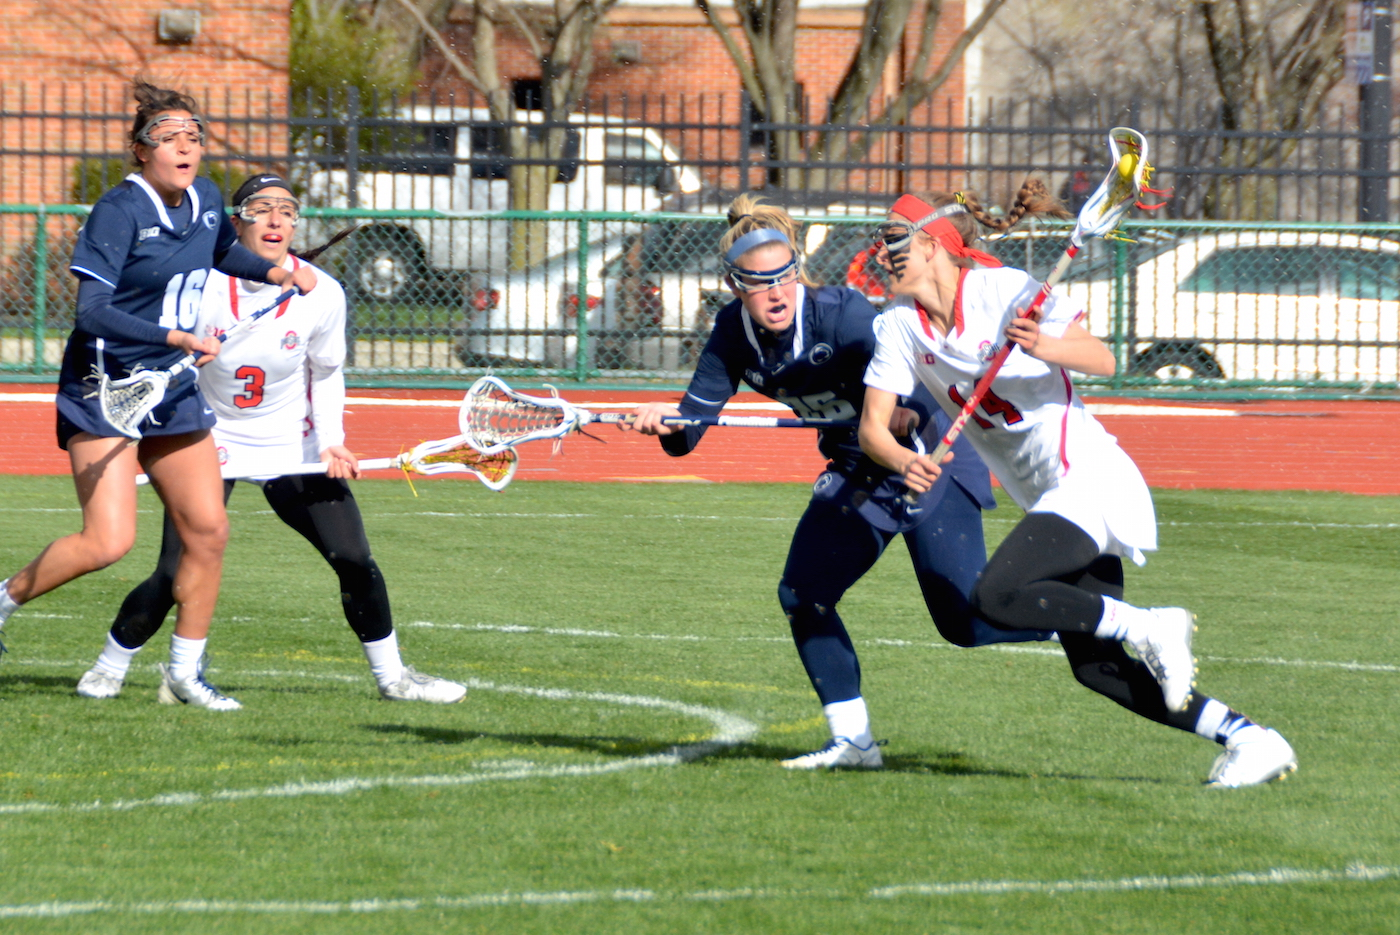 OSU senior attackman Cian Dabrowski (14) charges forward with the ball while Penn State senior Ally Heavens (26) plays defense during a game in Columbus on April 9. Credit: Evan Szymkowicz   Sports Director